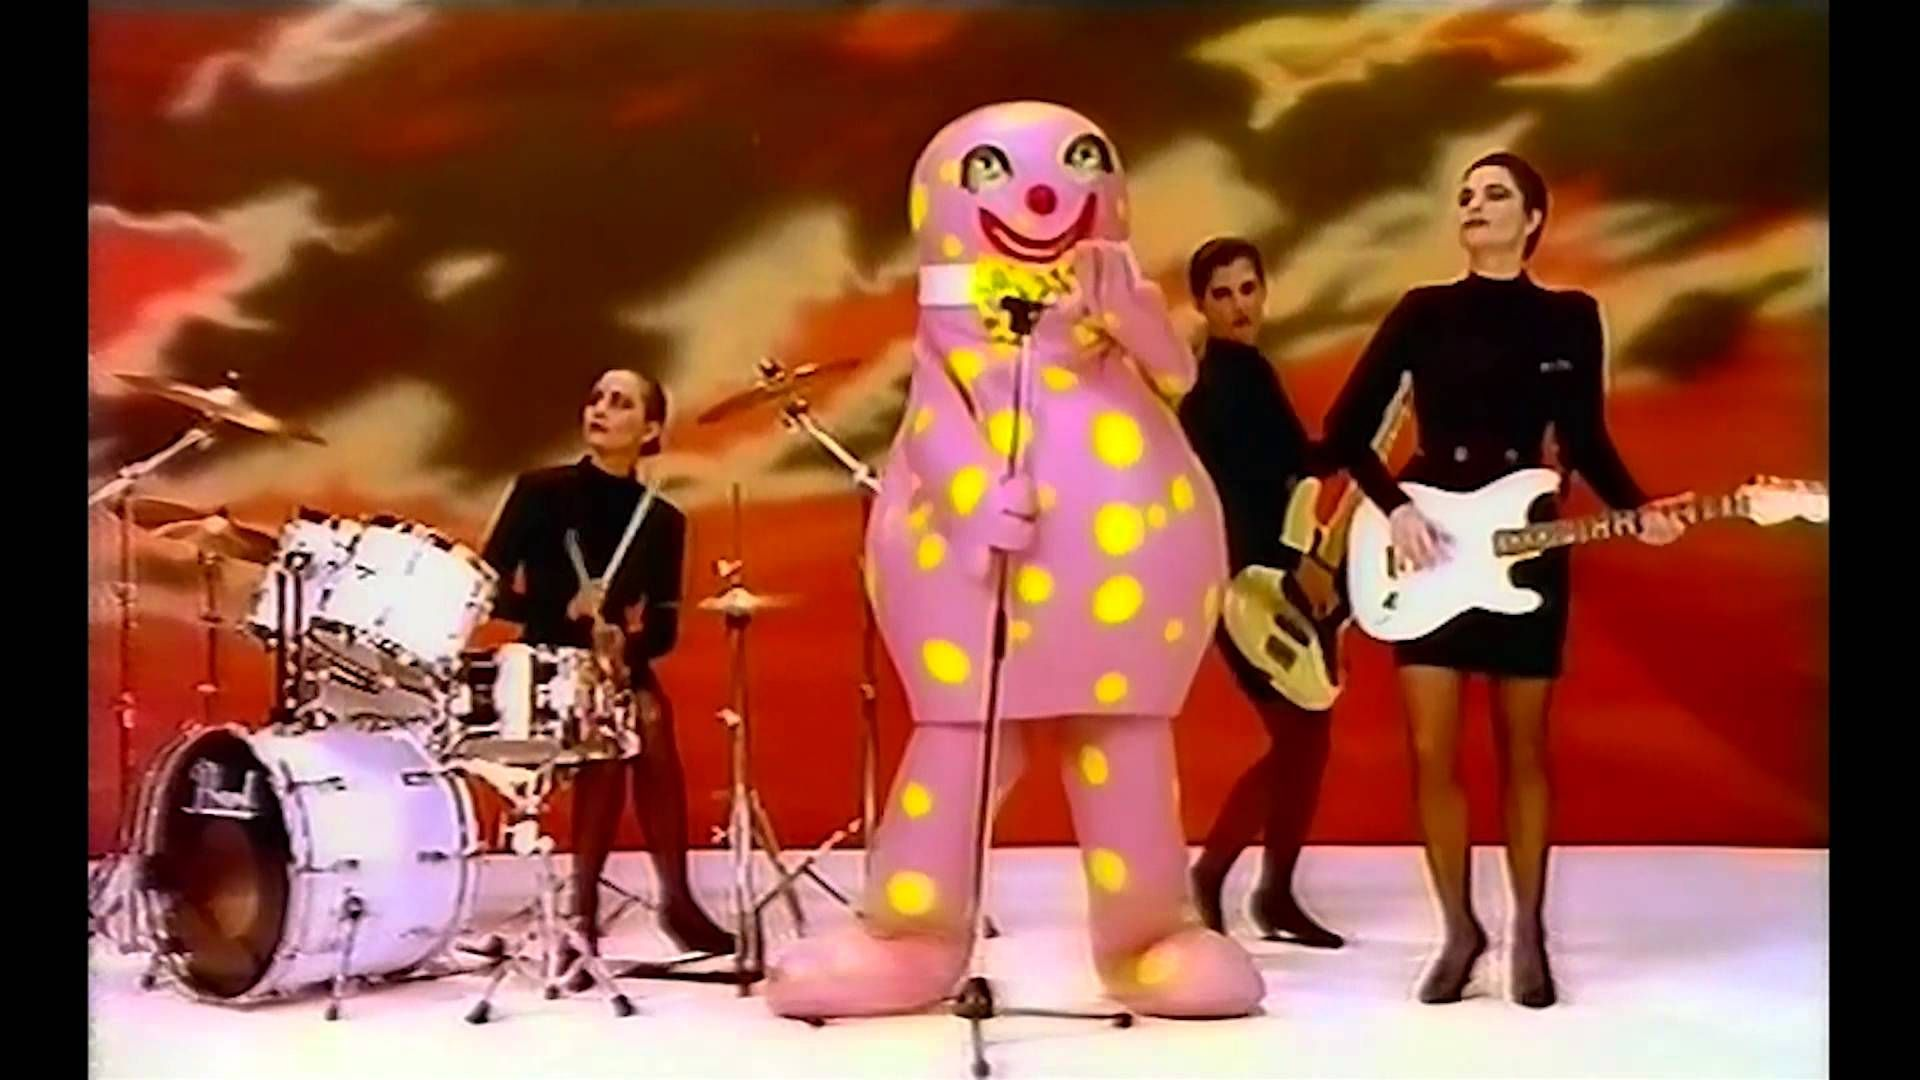 Christmas Number 1 2020 Mr Blobby Music Video [1993 Christmas Number 1] in 2020